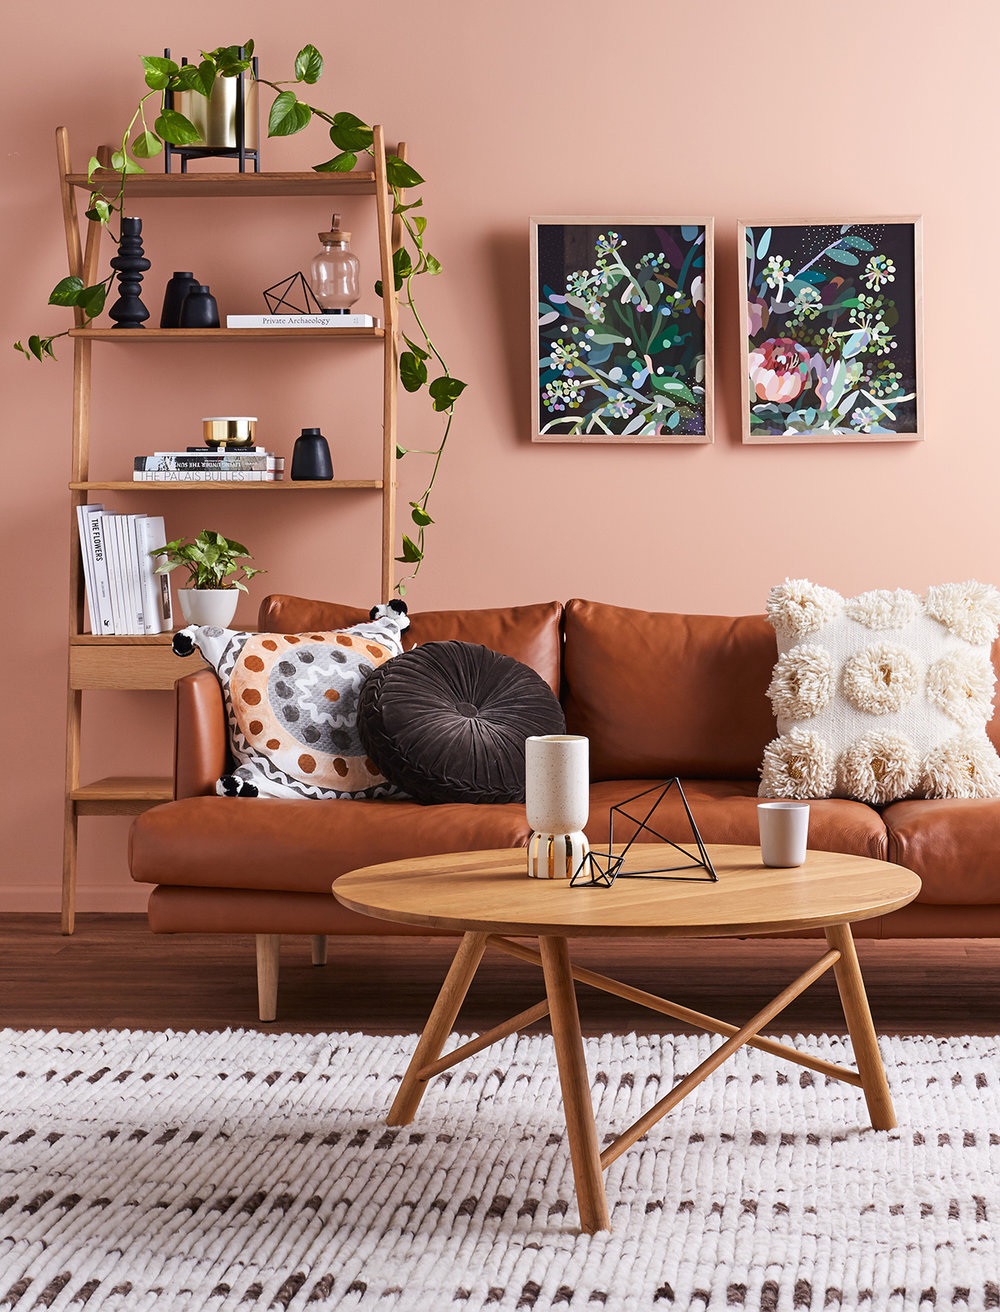 Peach or Millennial Pink? Find out the interior trends for 2018, what's going to be in and what's out!